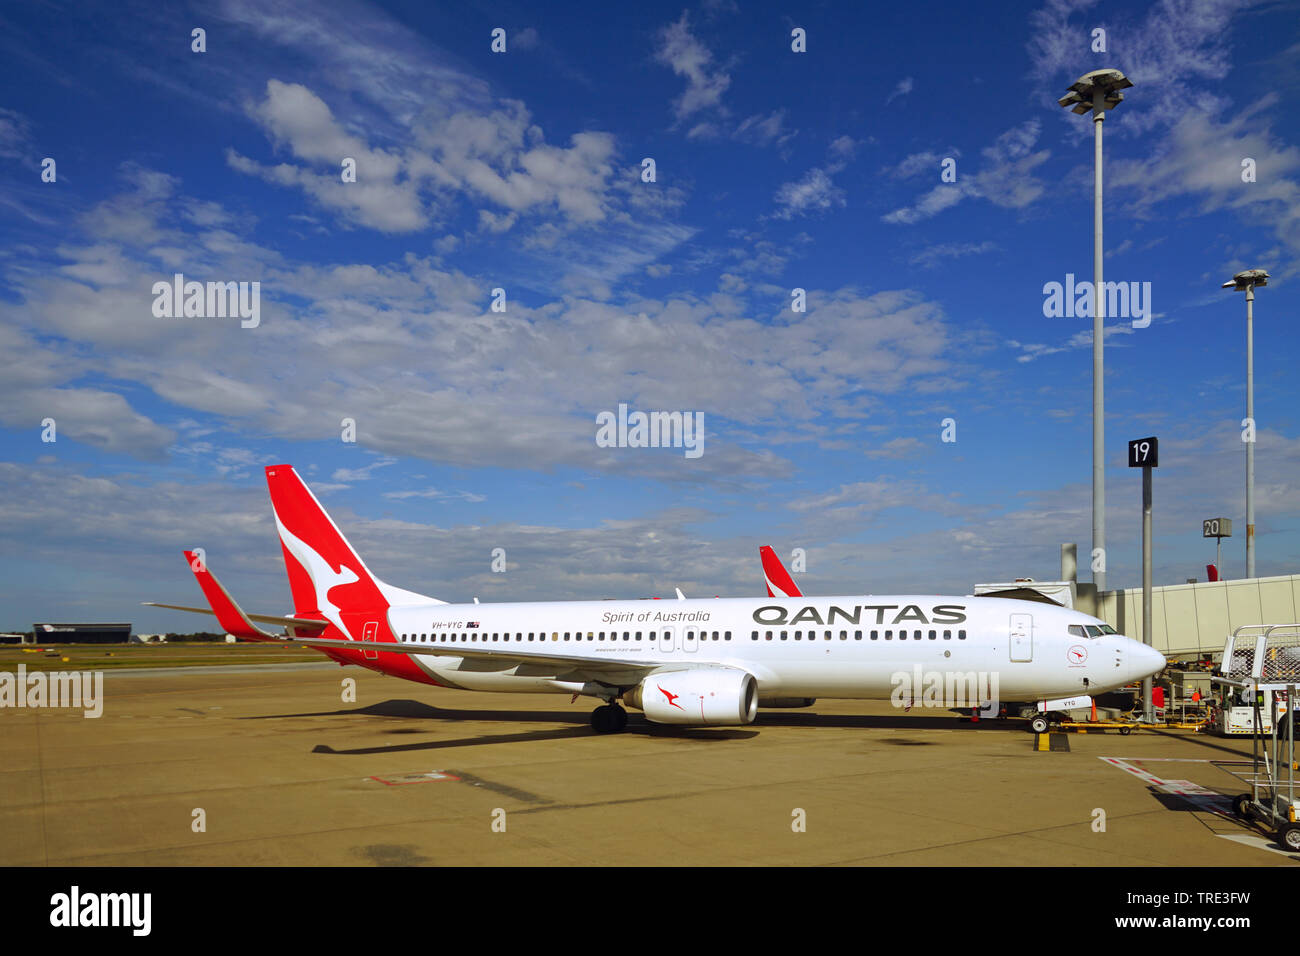 Qf Stock Photos & Qf Stock Images - Page 2 - Alamy